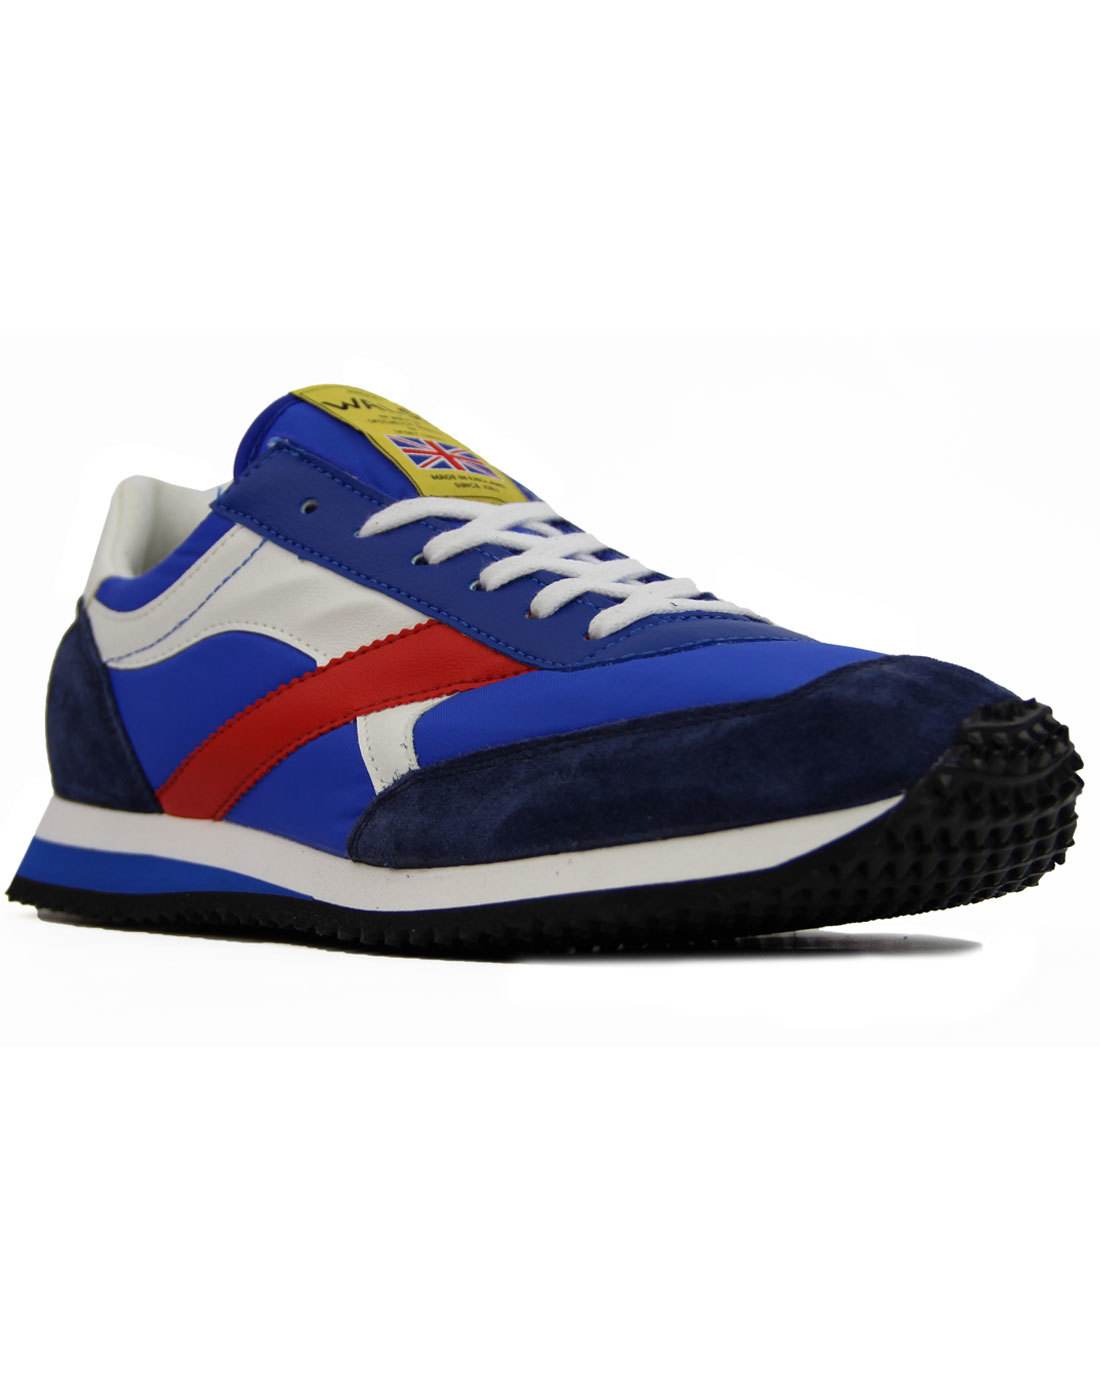 Tornado WALSH Made In England Retro Trainers BLUE